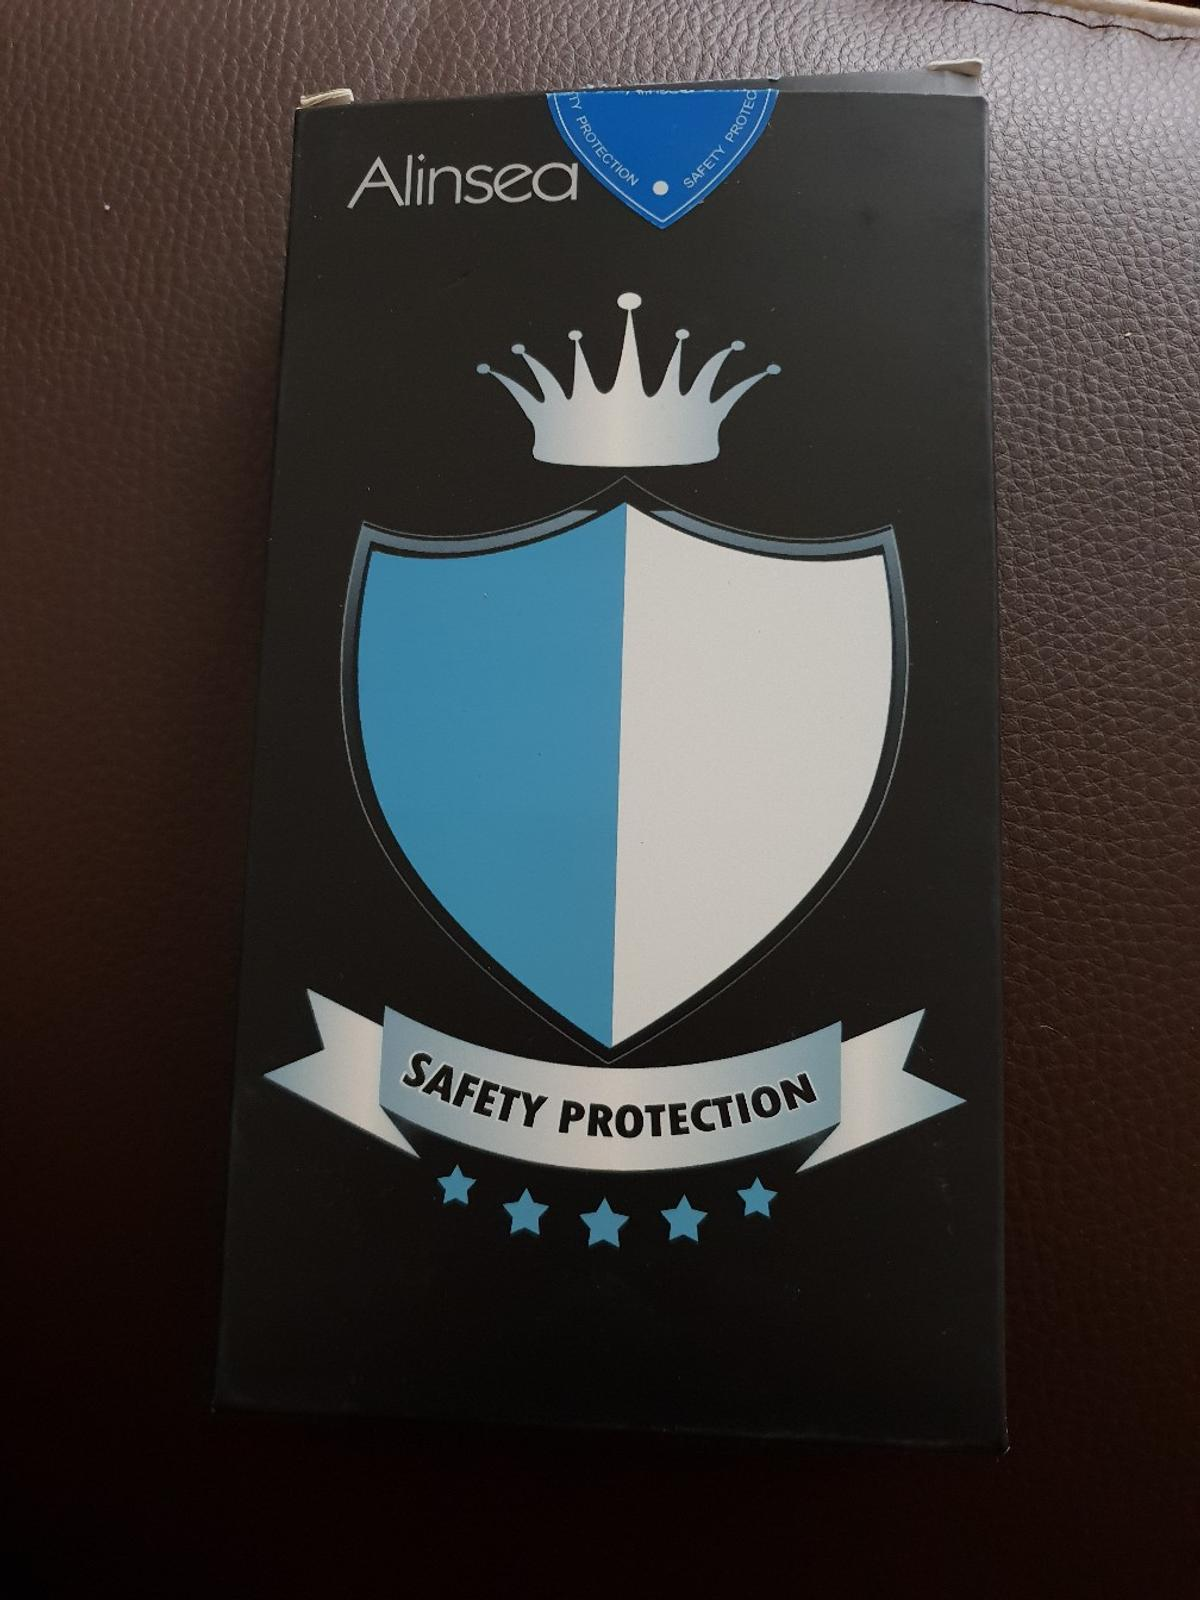 0ed23a558fdbf Alinsea S9 screen protector & phone case in M14 Manchester for £5.50 ...